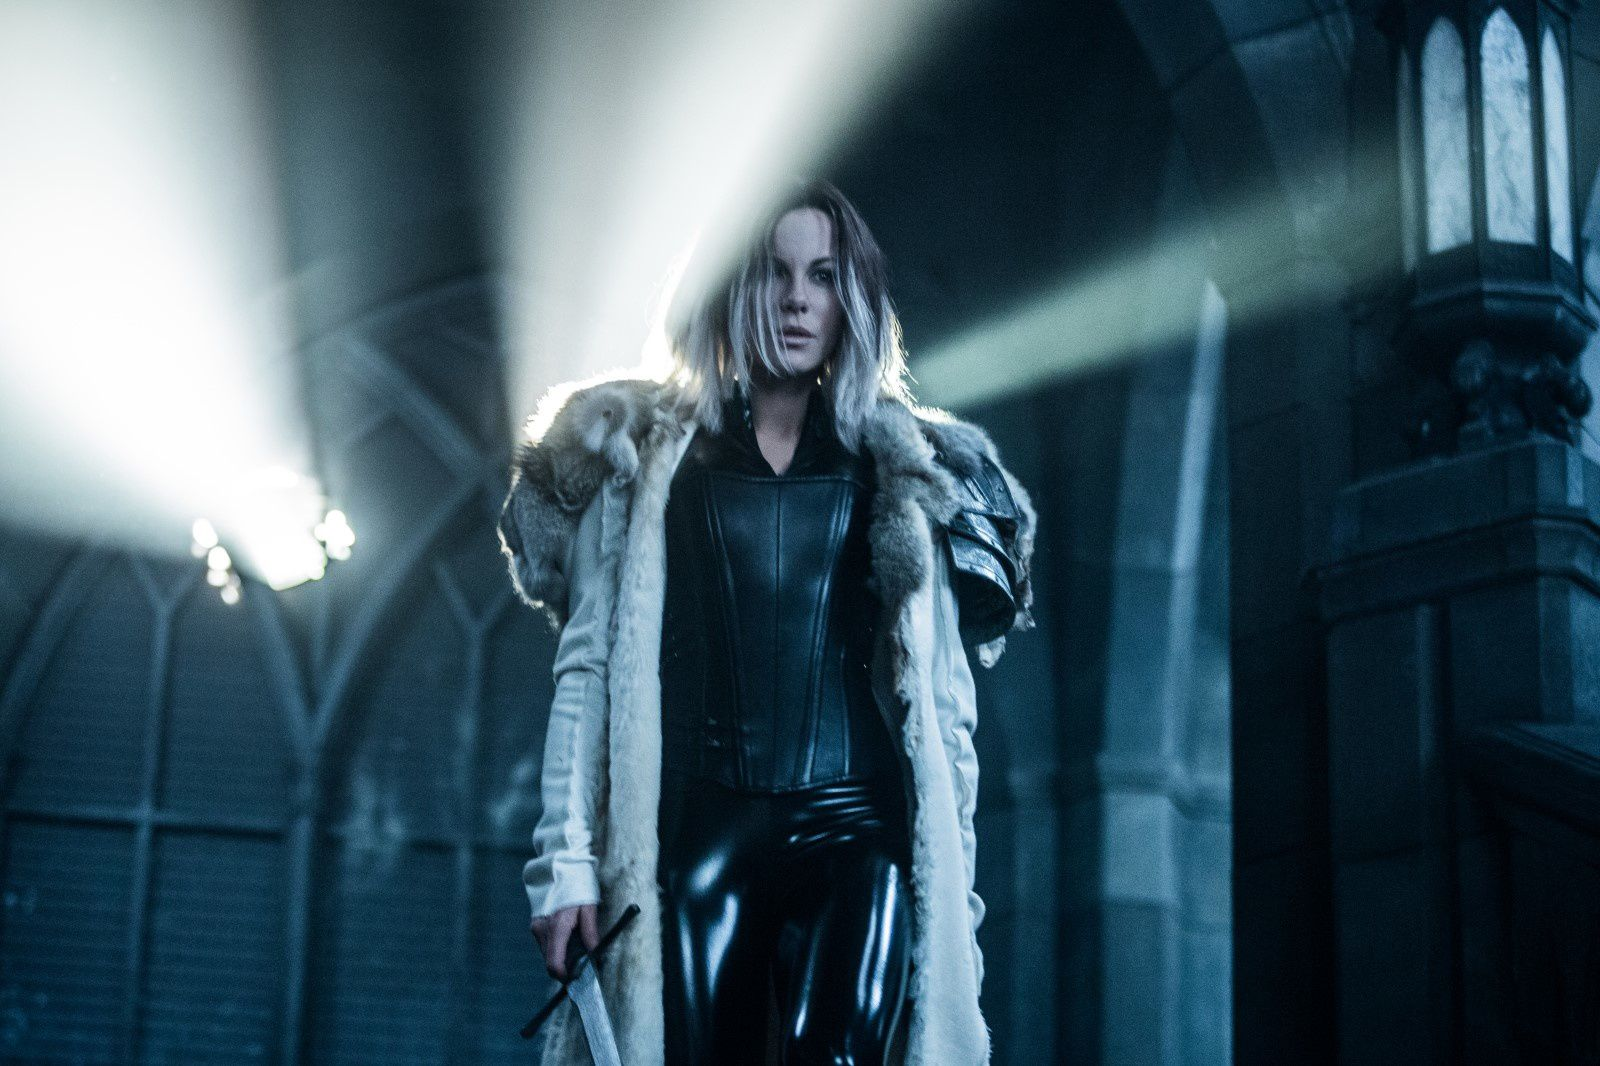 [critique] Underworld : Blood Wars